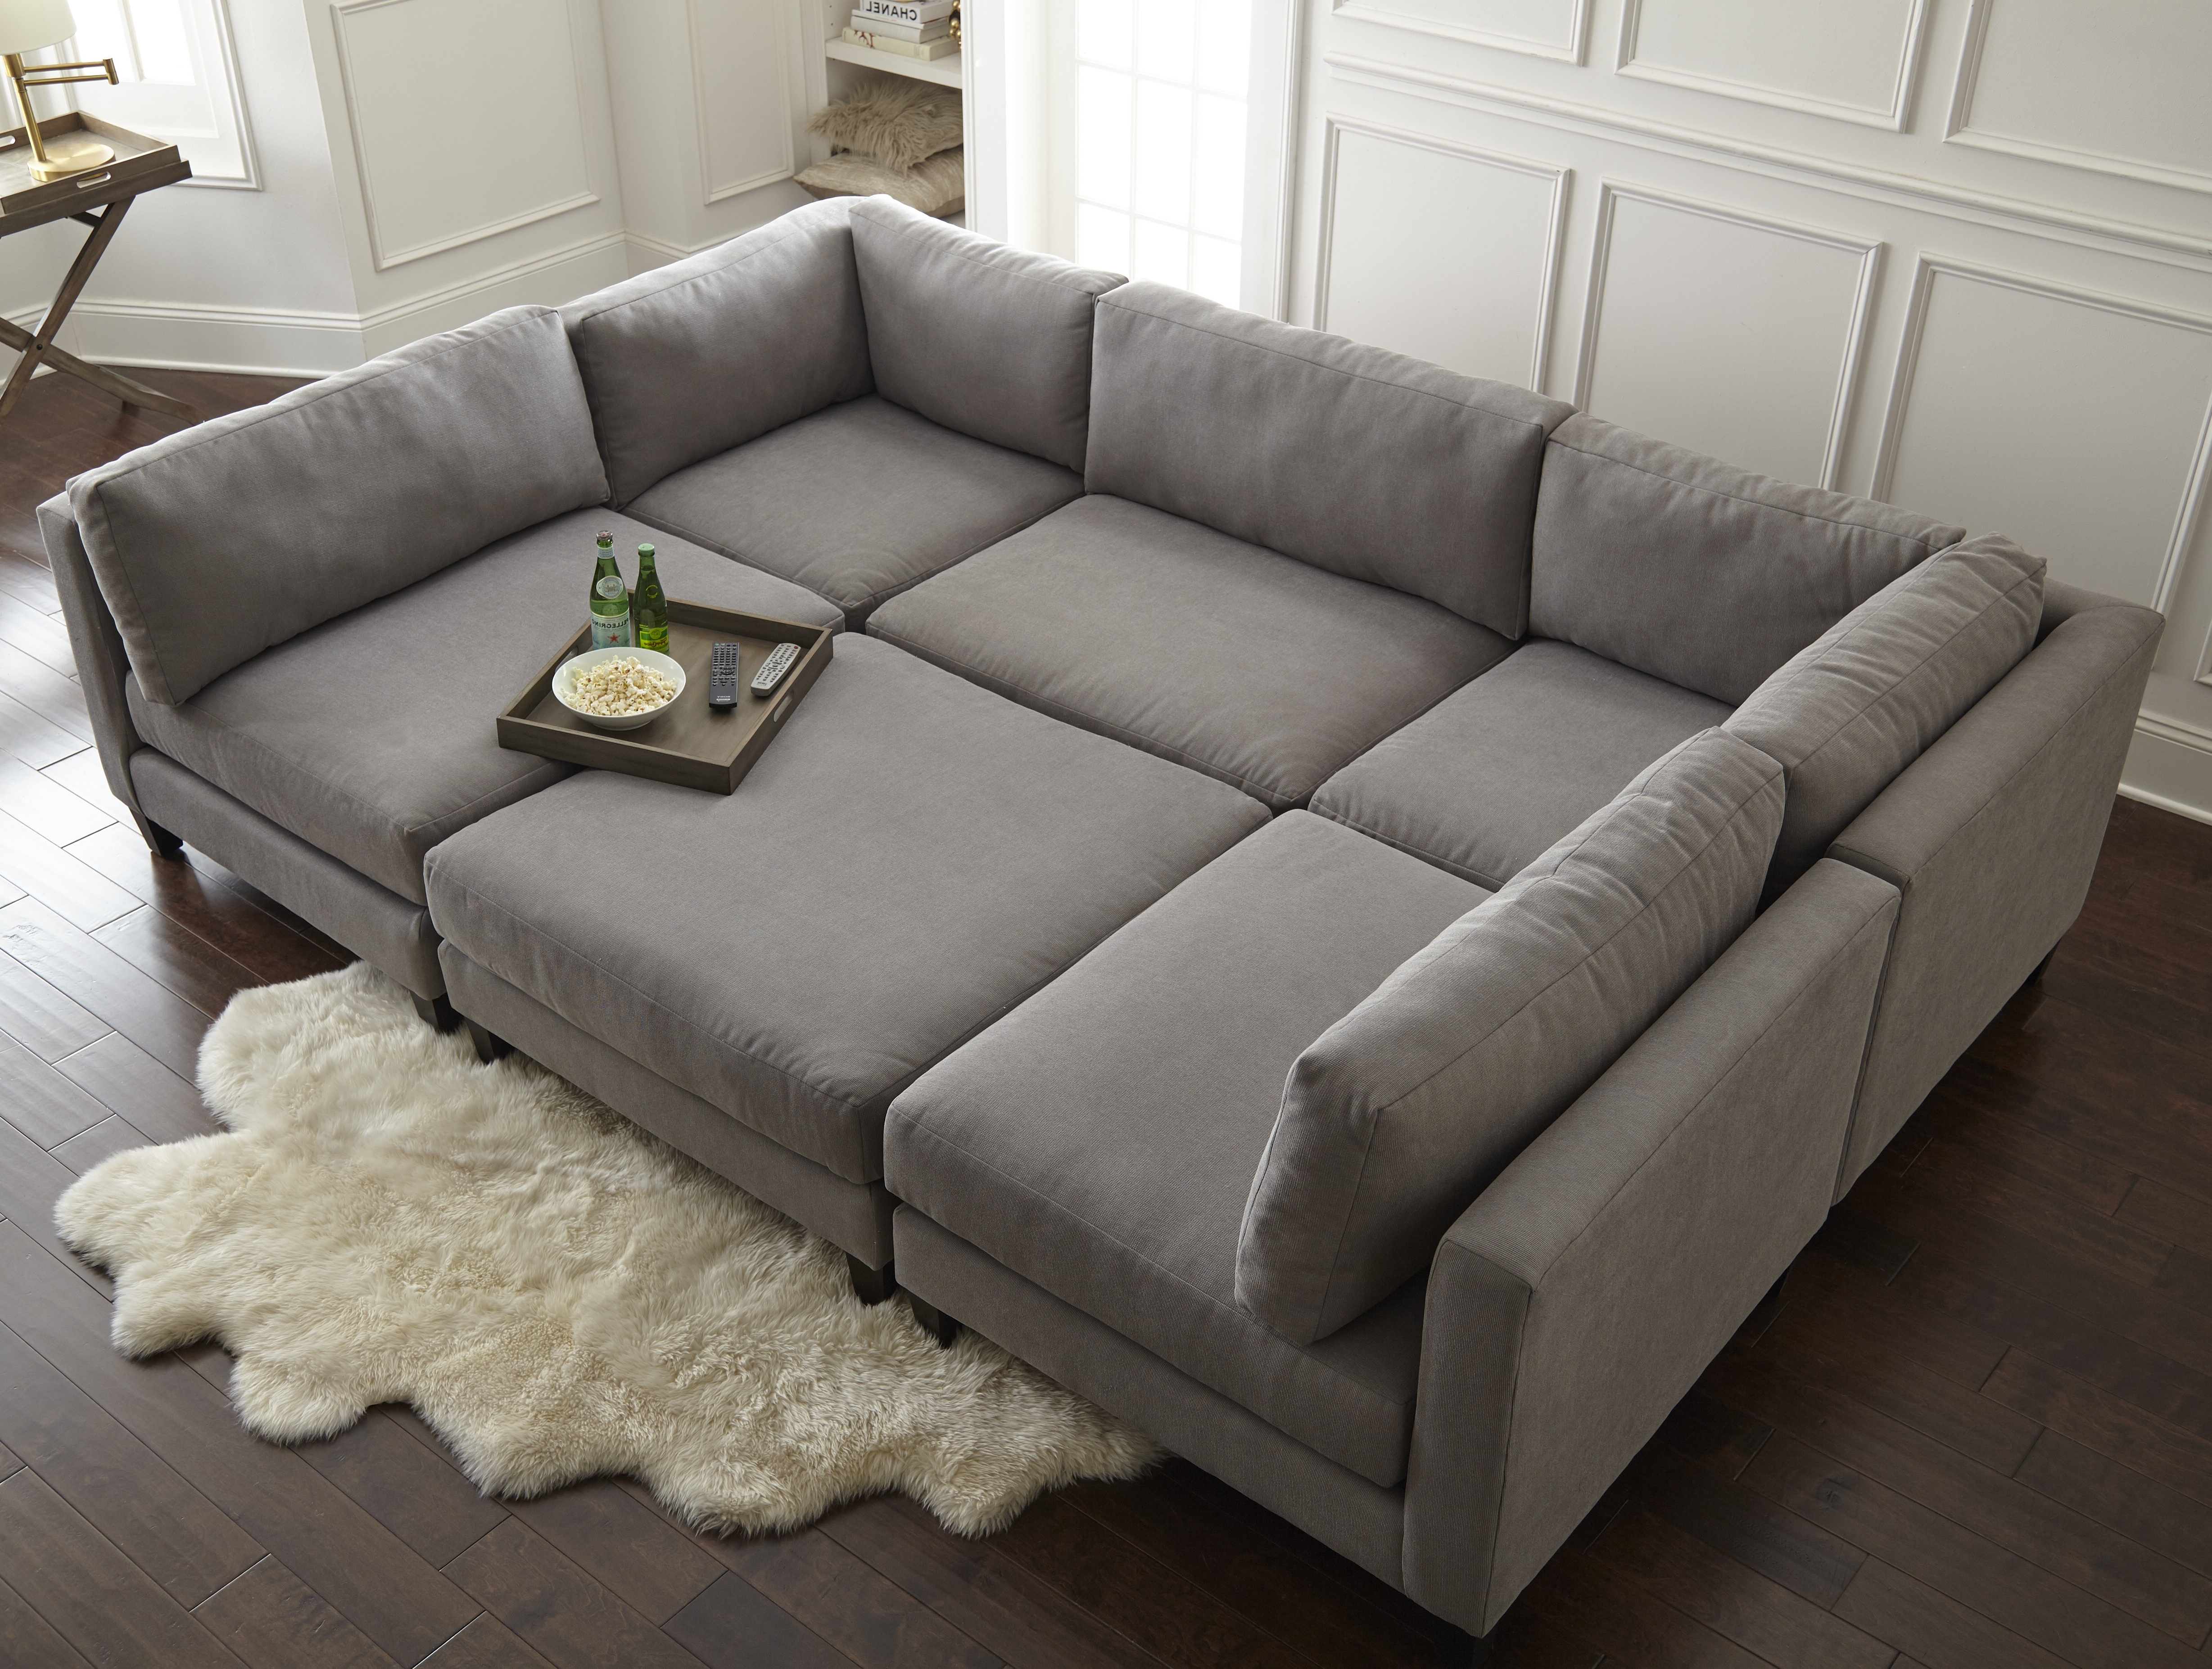 Preferred Extra Large Sectional Sofa (View 4 of 15)